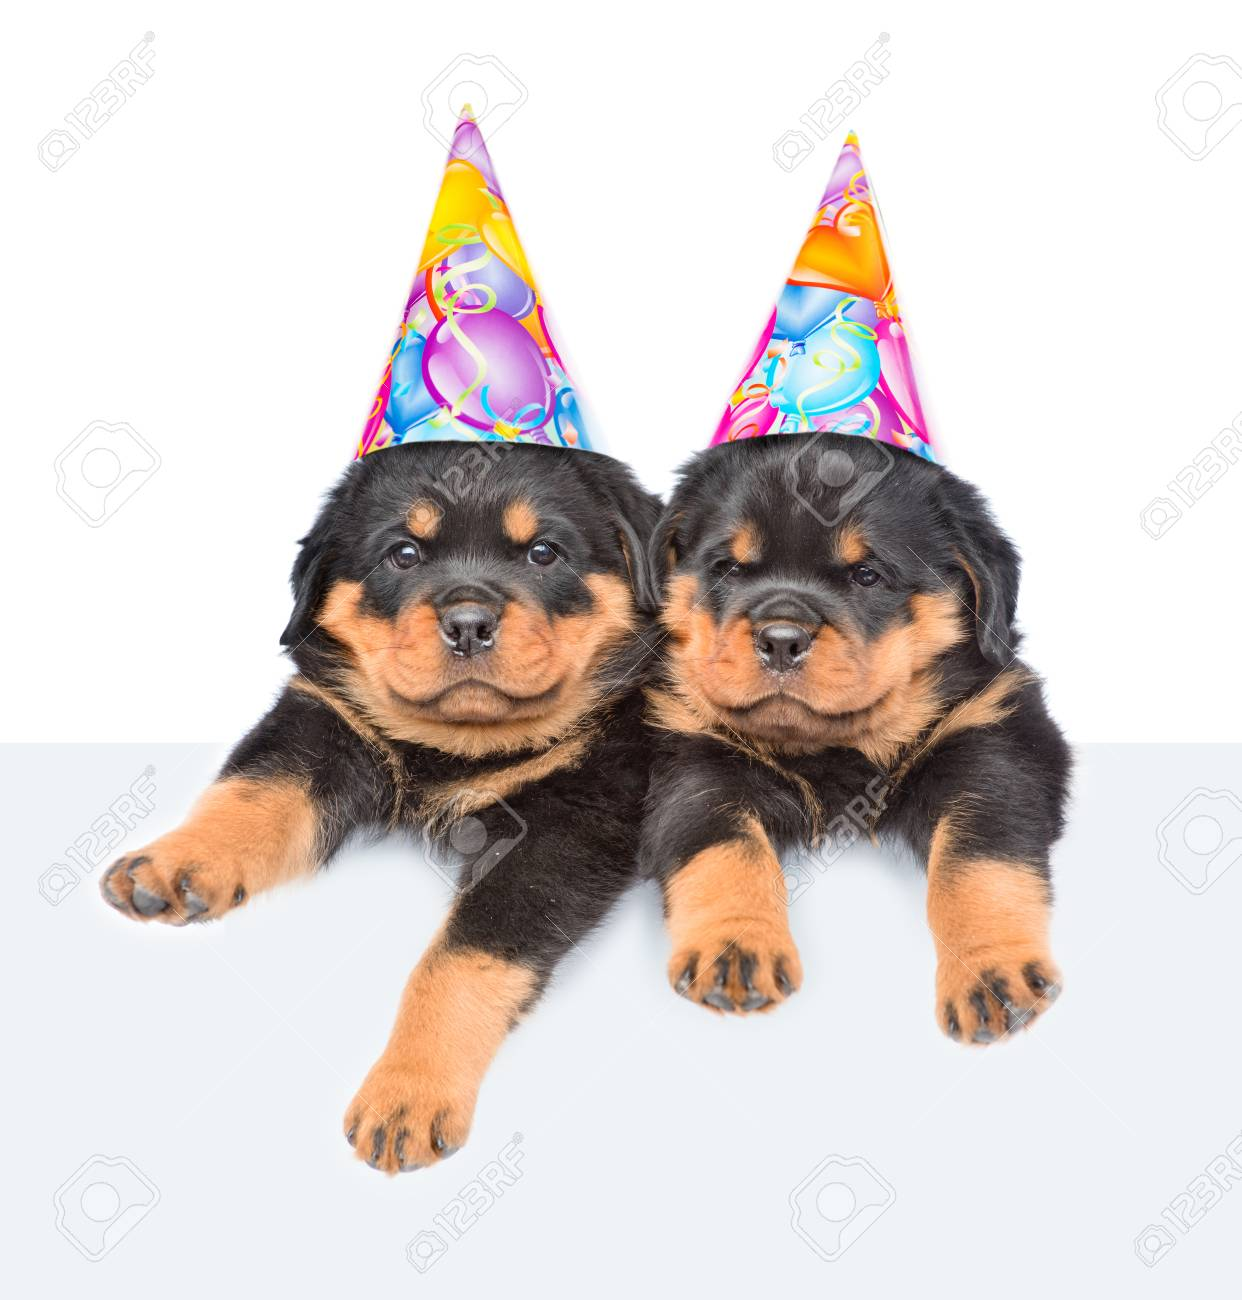 Two Rottweiler Puppies In Birthday Hats Peeking From Behind Empty